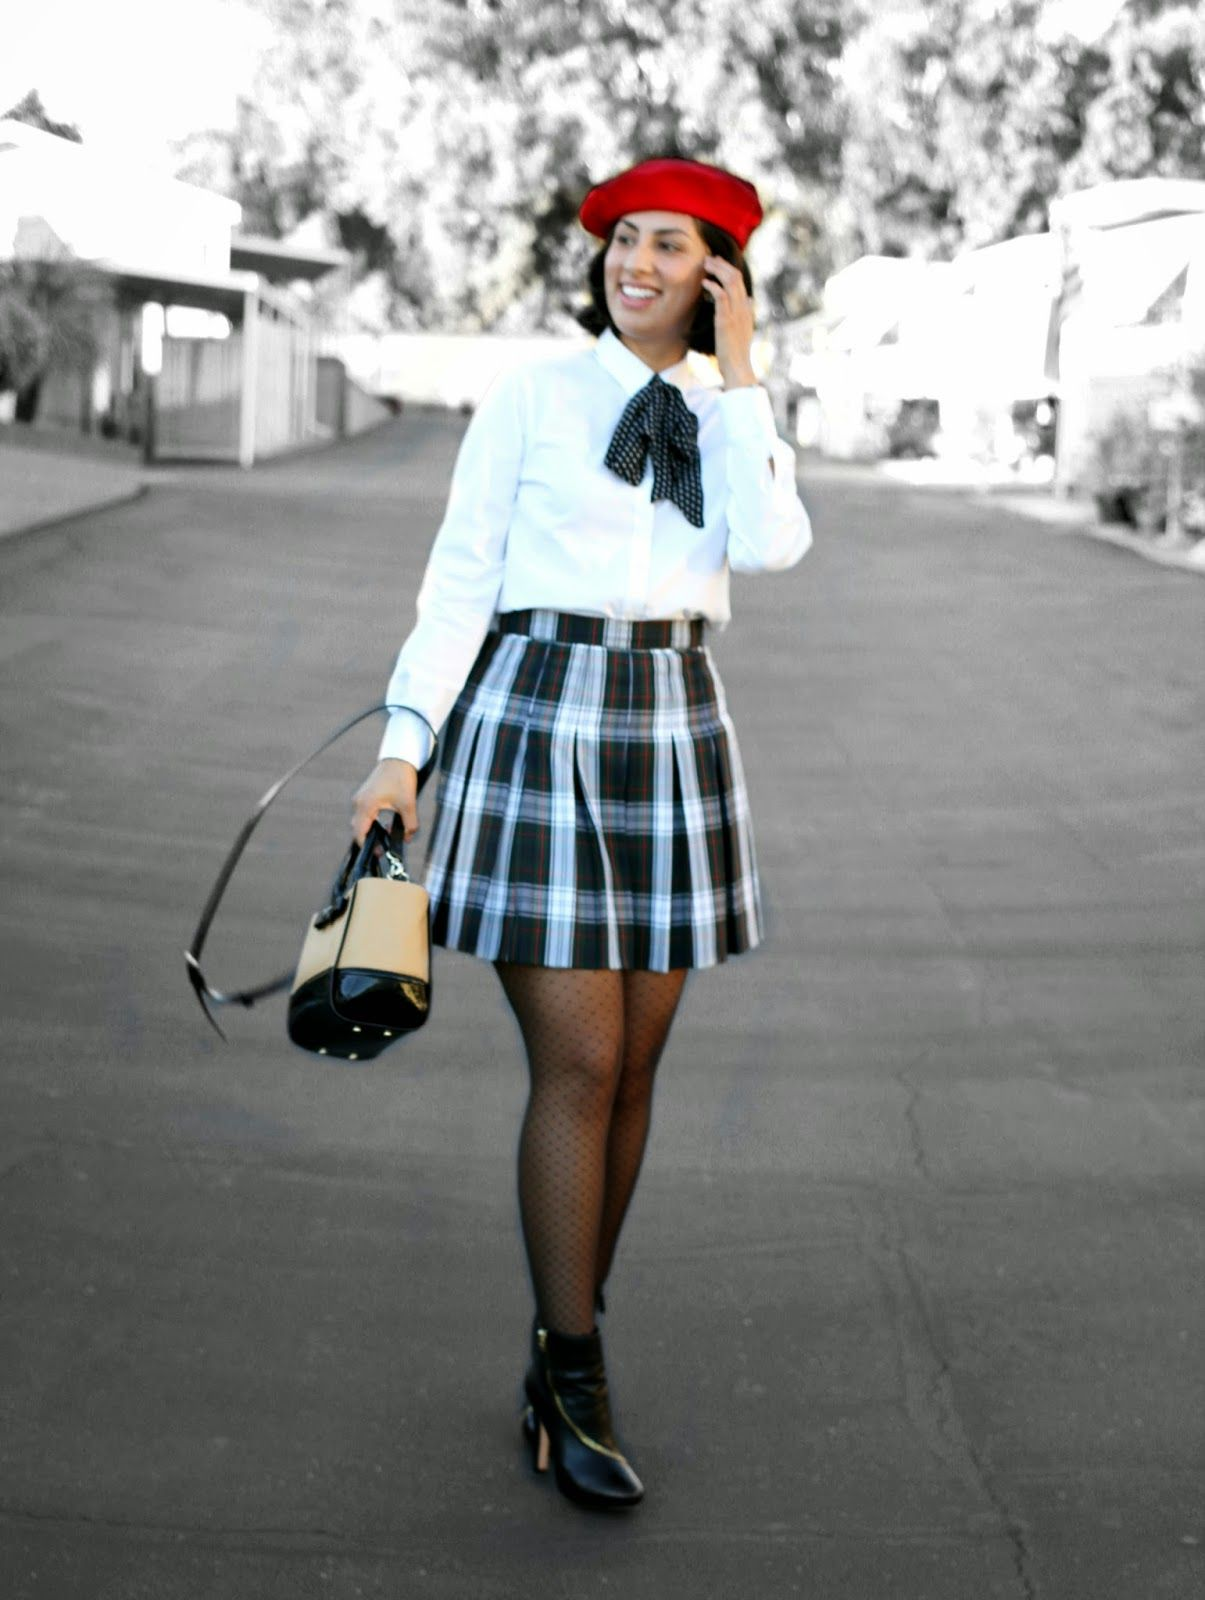 Rocks Fashion Bug: Holiday Smile Style School uniform inspired look. Holiday tradition of plaid and berets